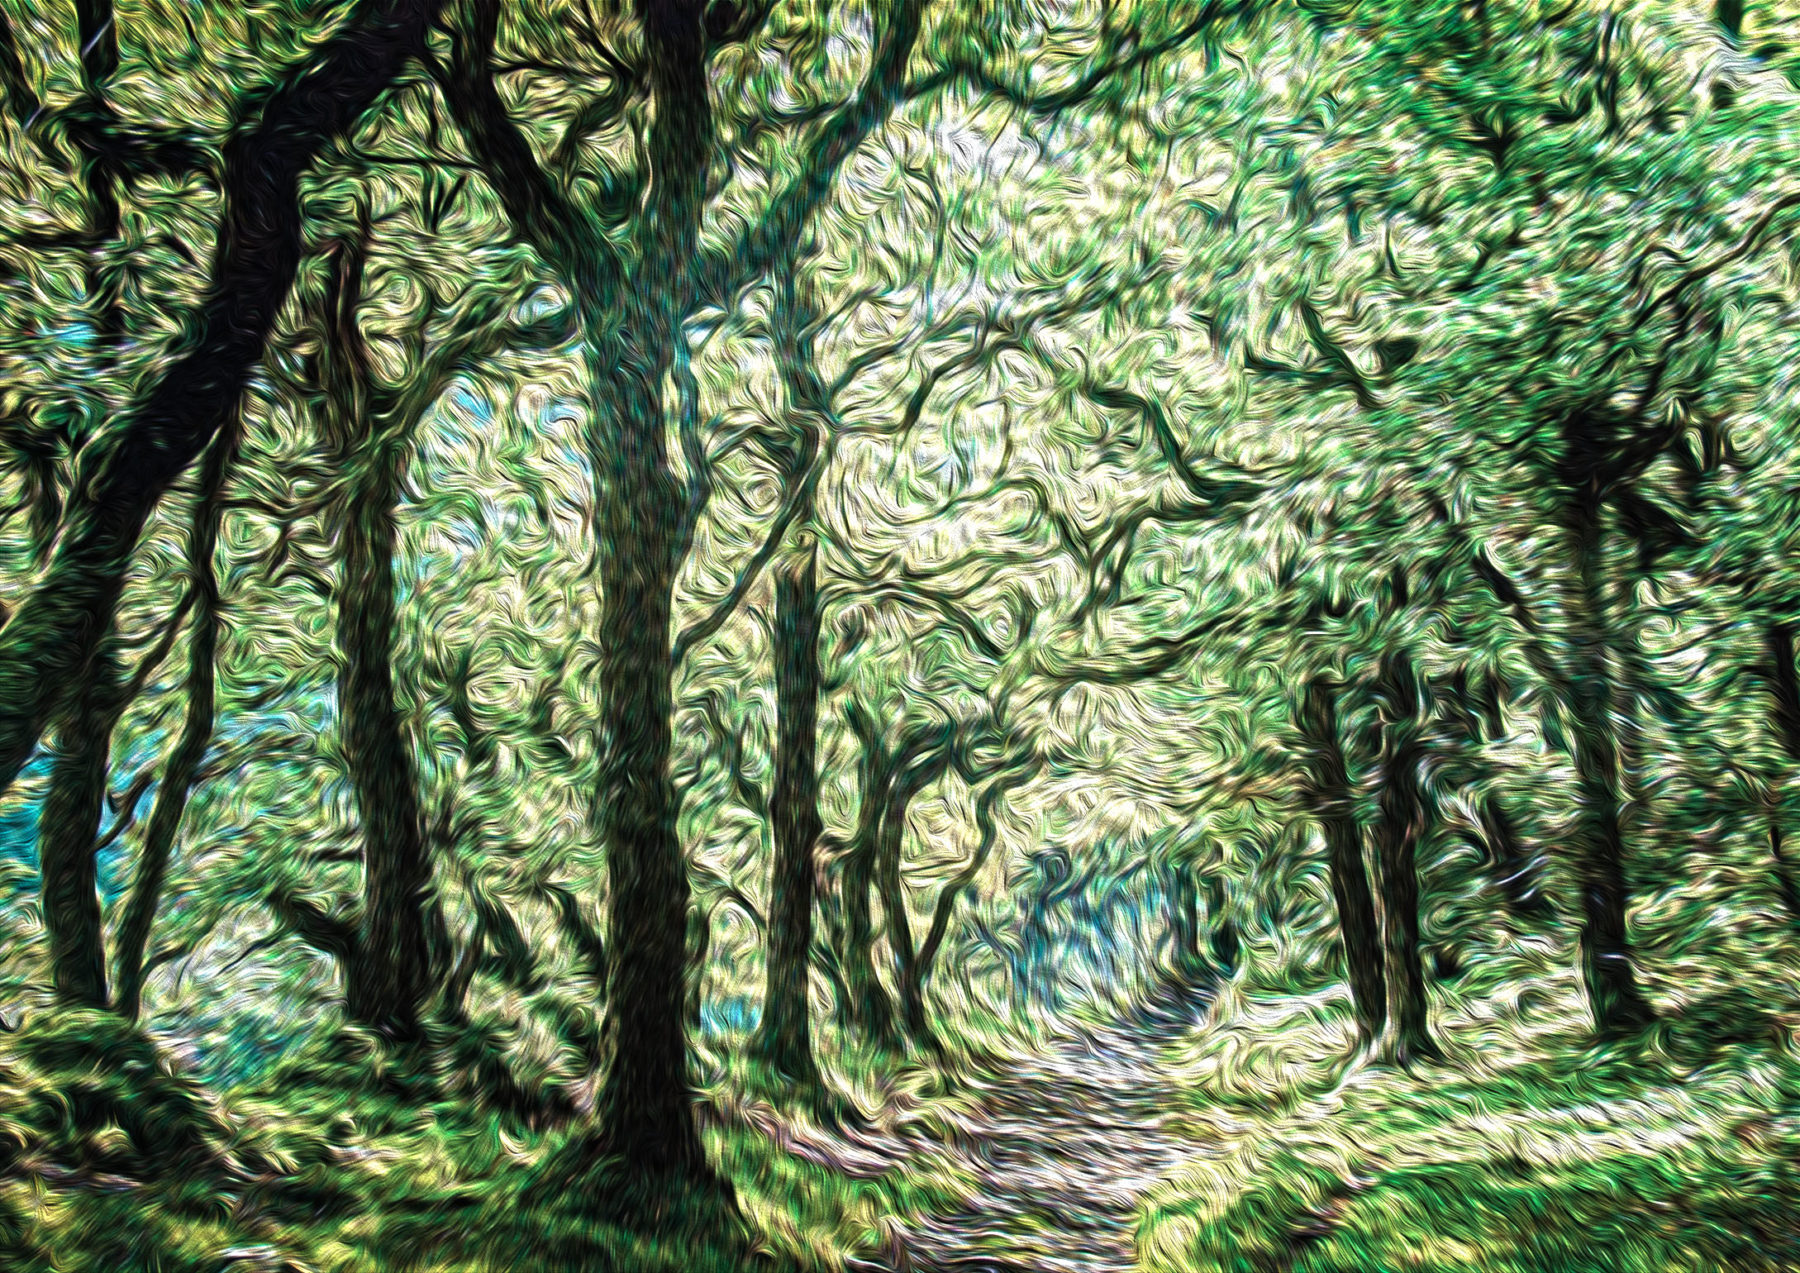 A forest scene with a path running through its centre is depicted in an abstract form by the artist, with swirling applications of green and blue green evoking a densely packed canopy of leaves.